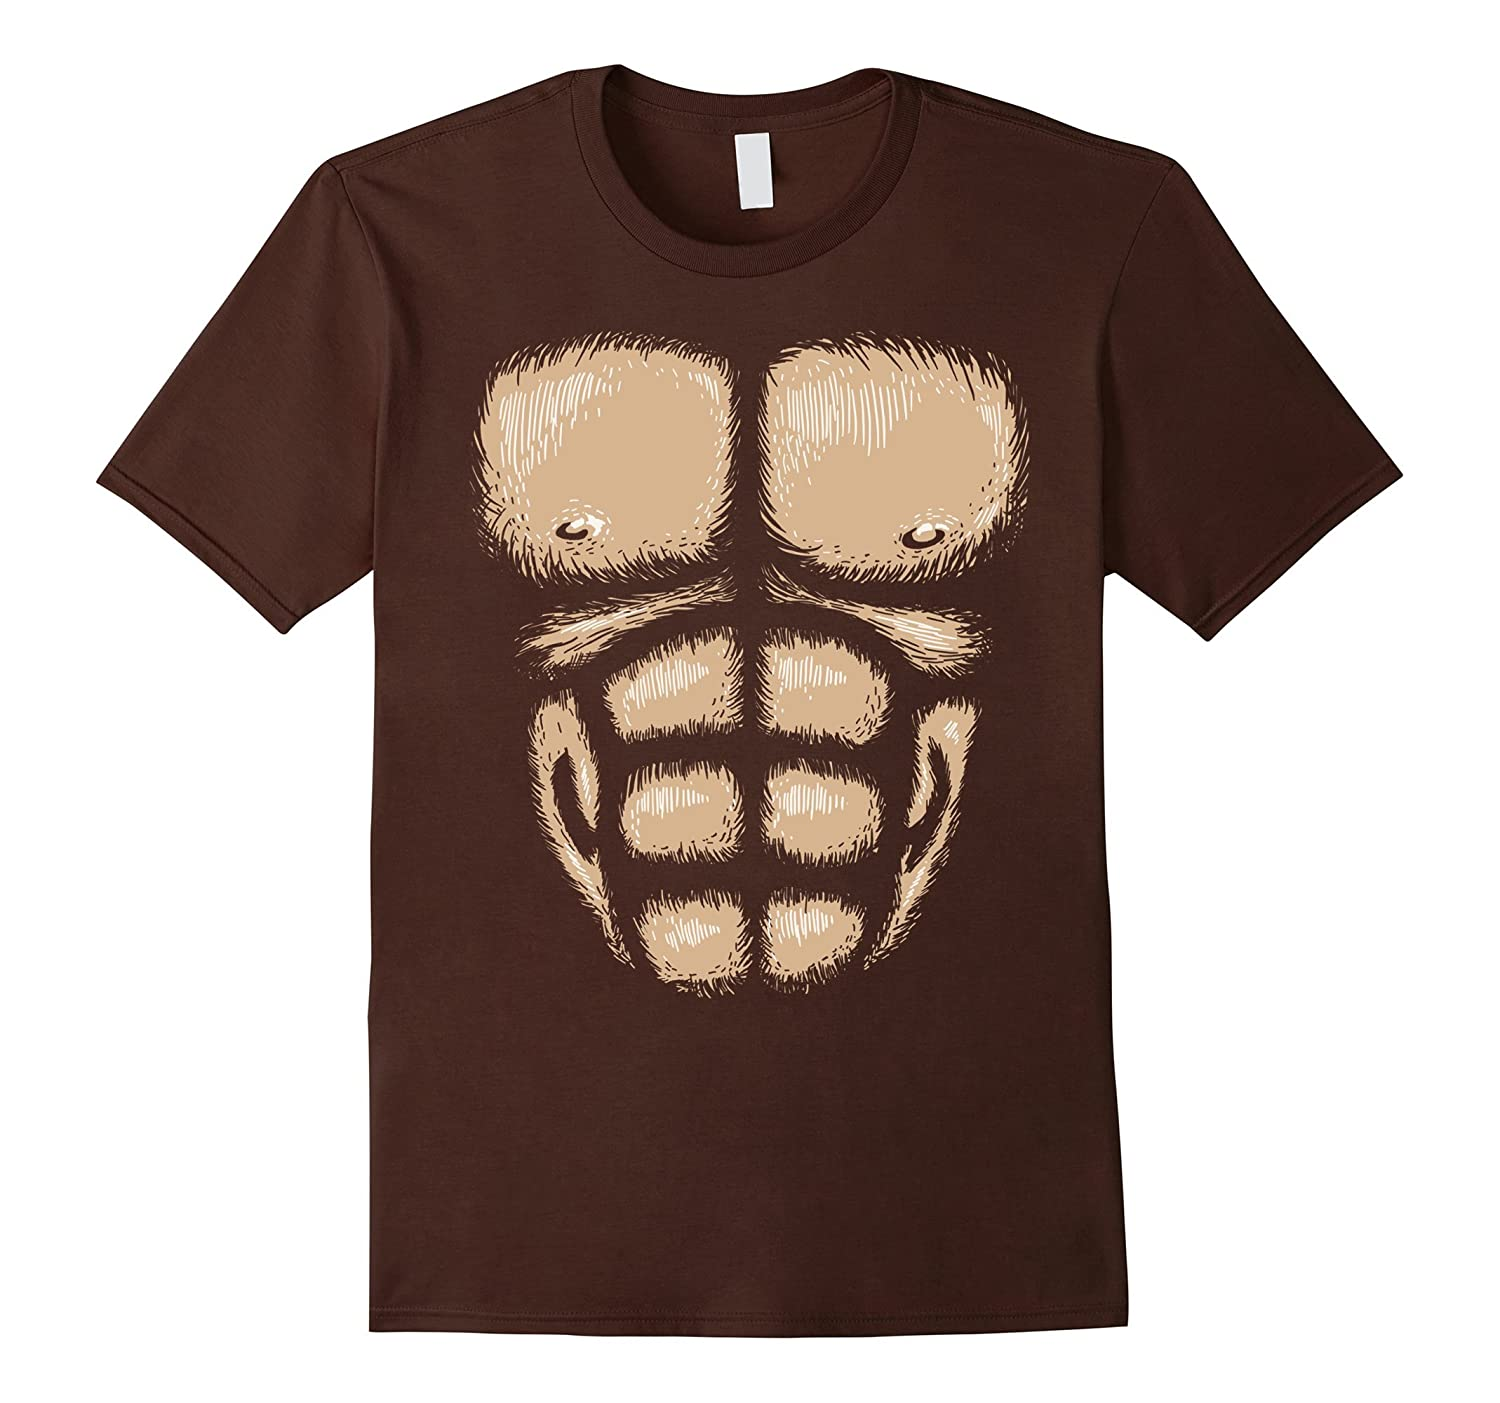 Monkey Chest Muscles Shirt Halloween Costume Gorilla Suit